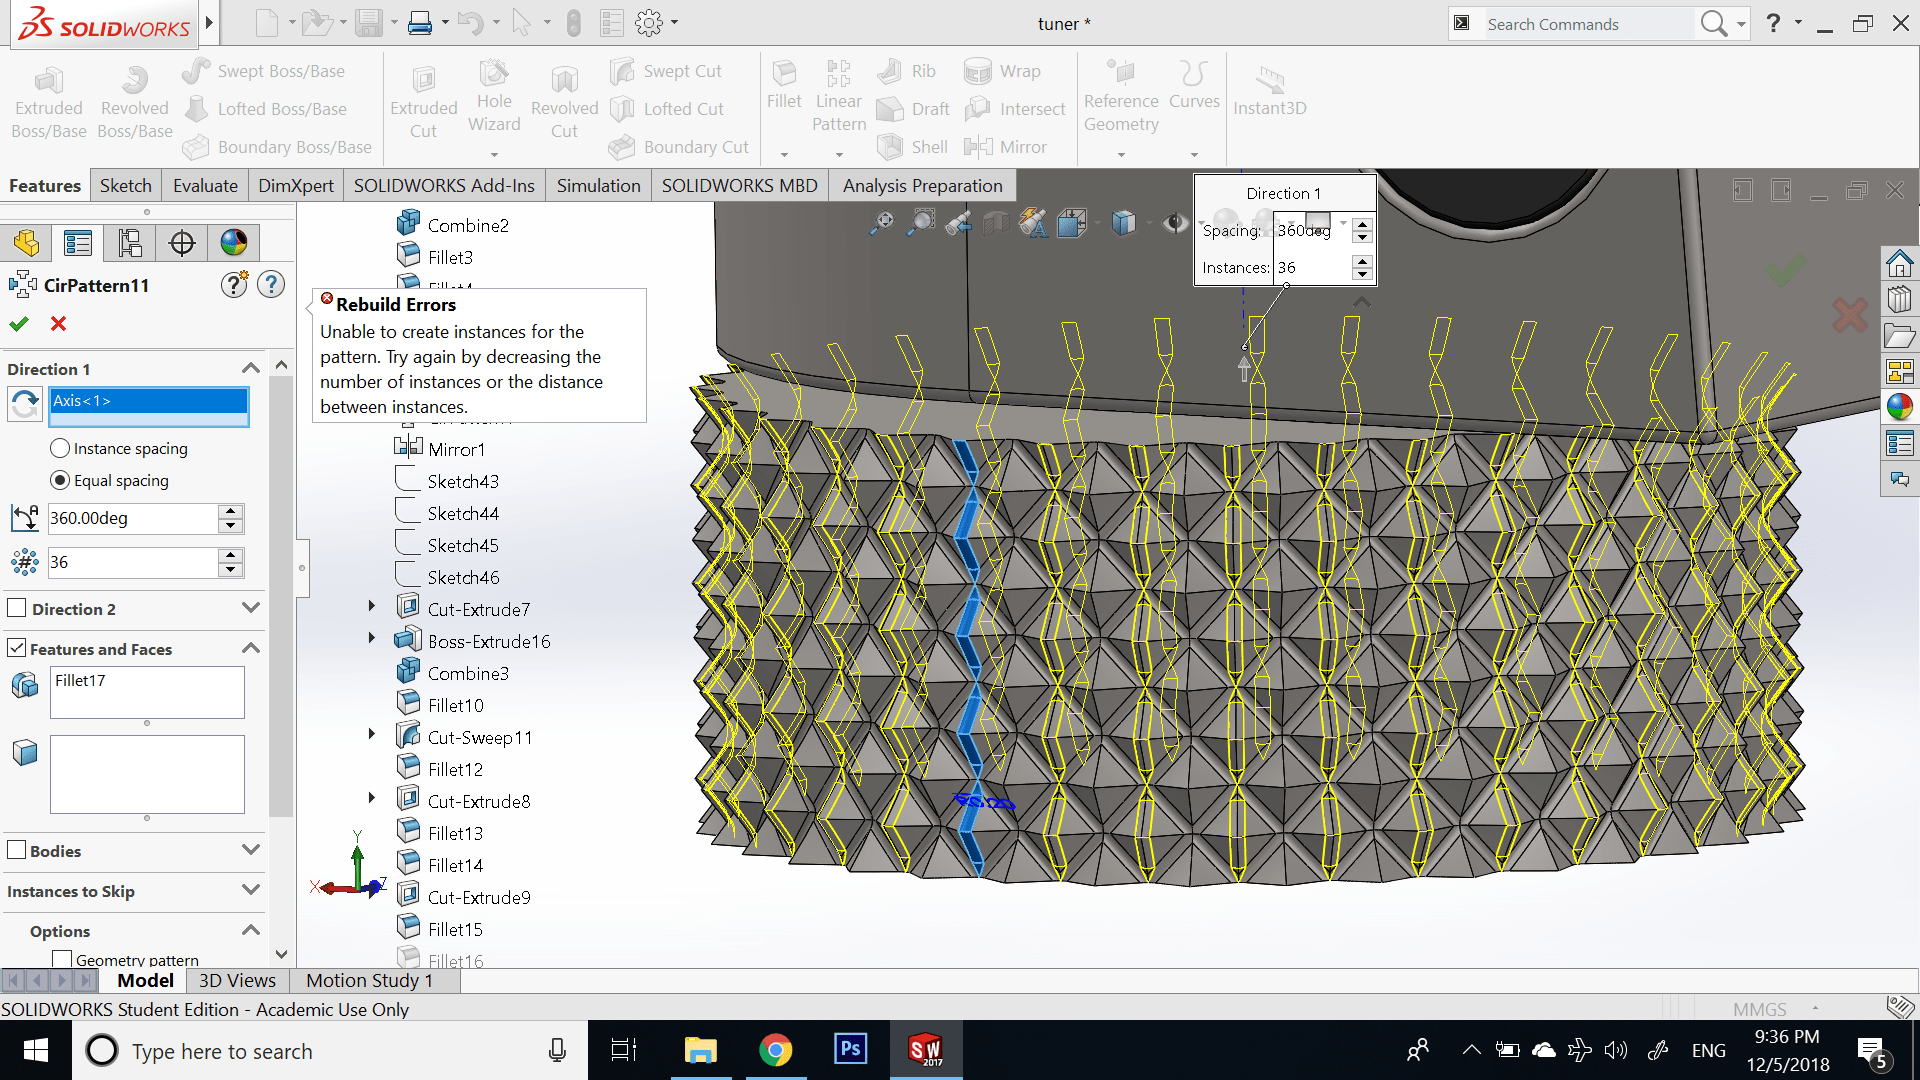 Solidworks Student